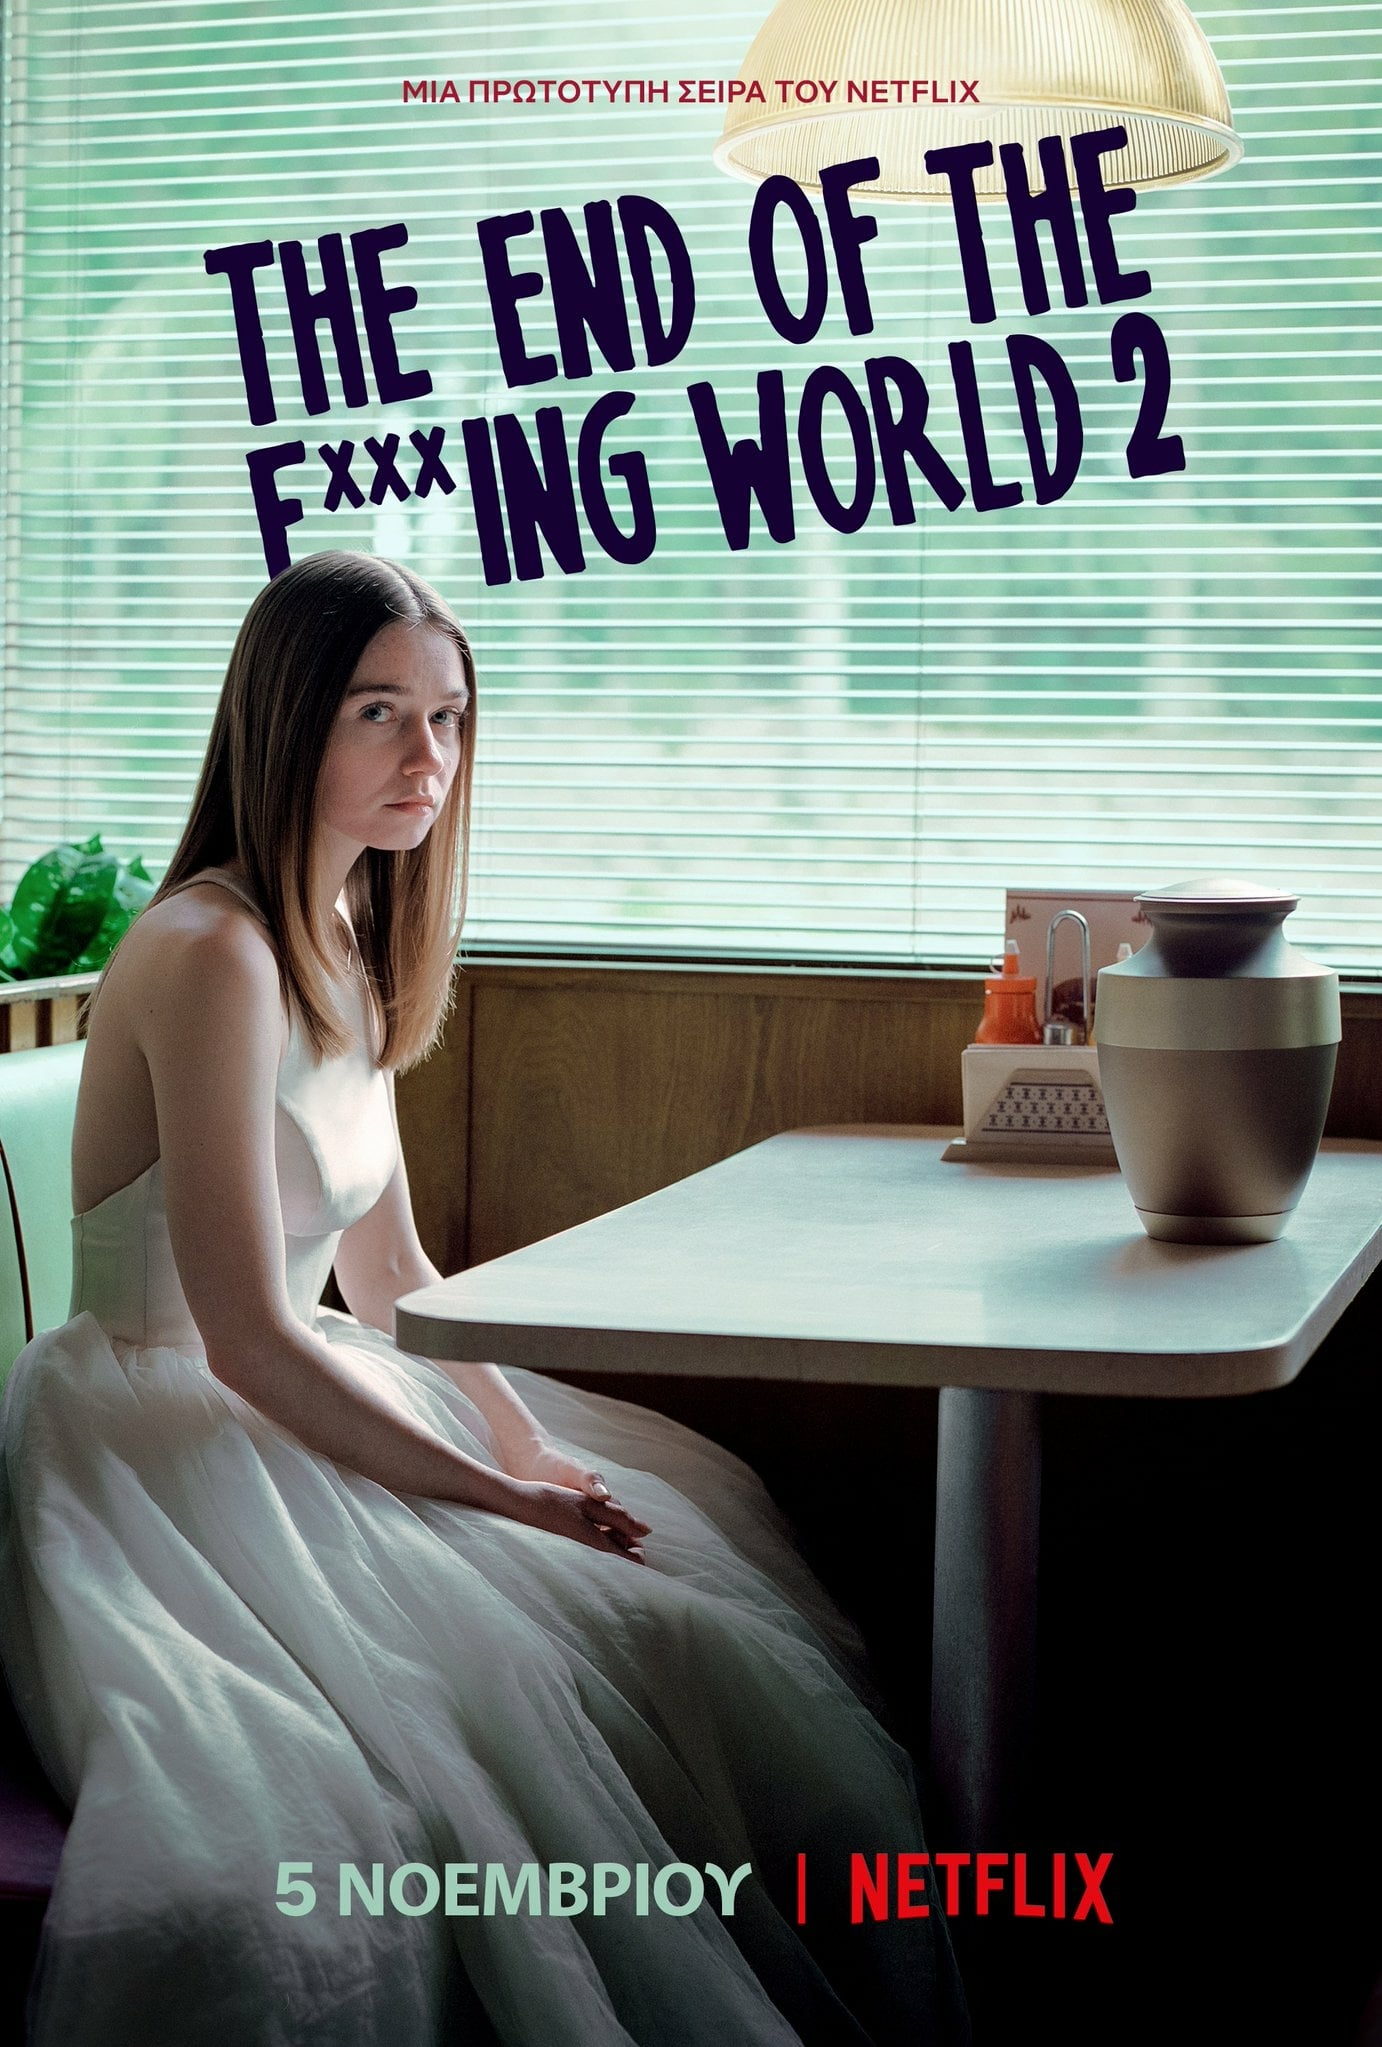 The End Of The F***ing World rating